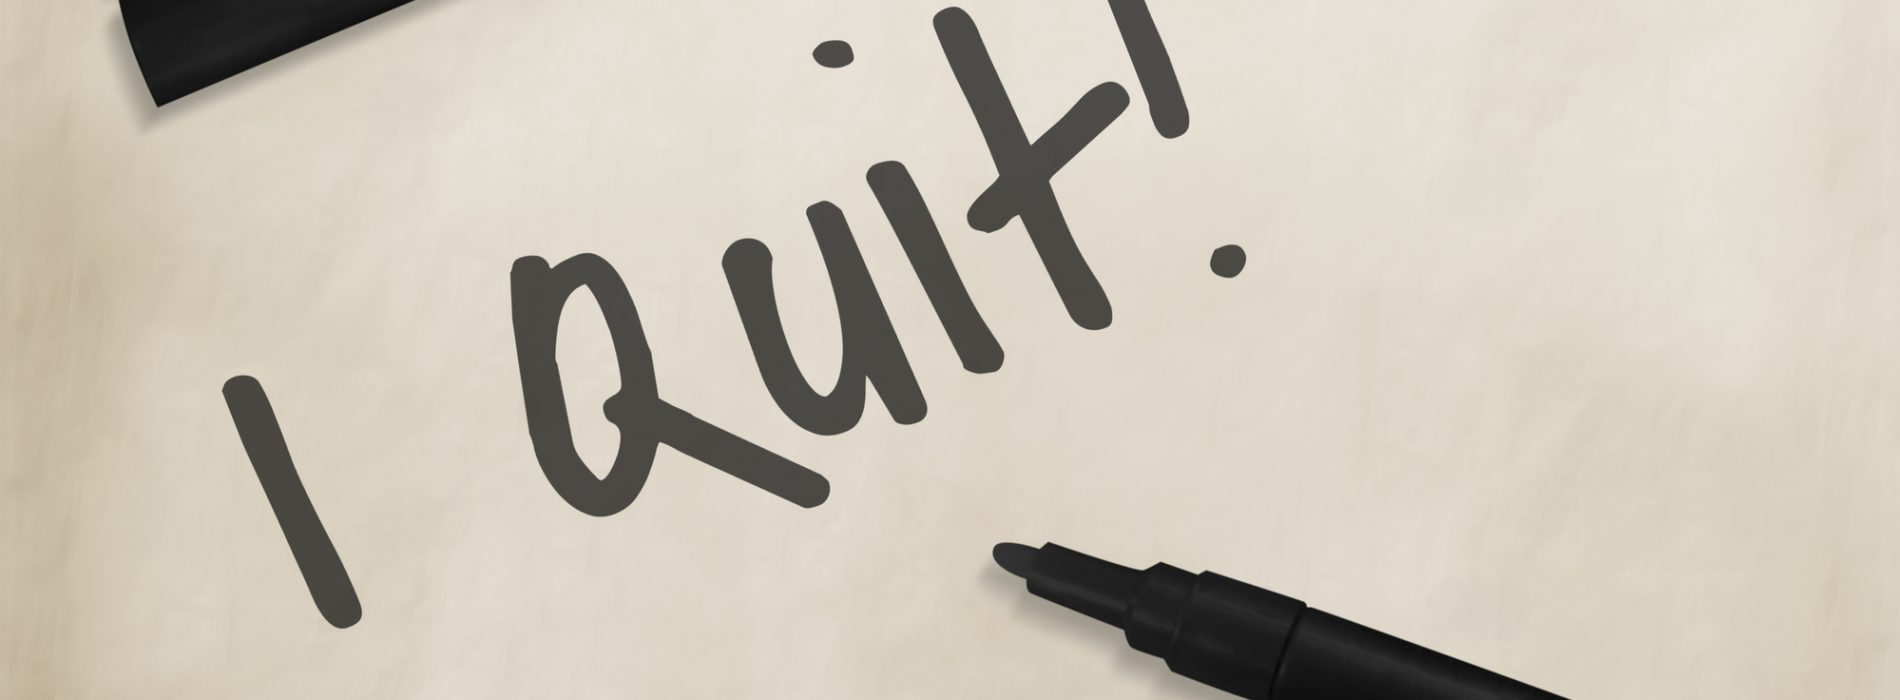 Divorce & the Art of Quitting